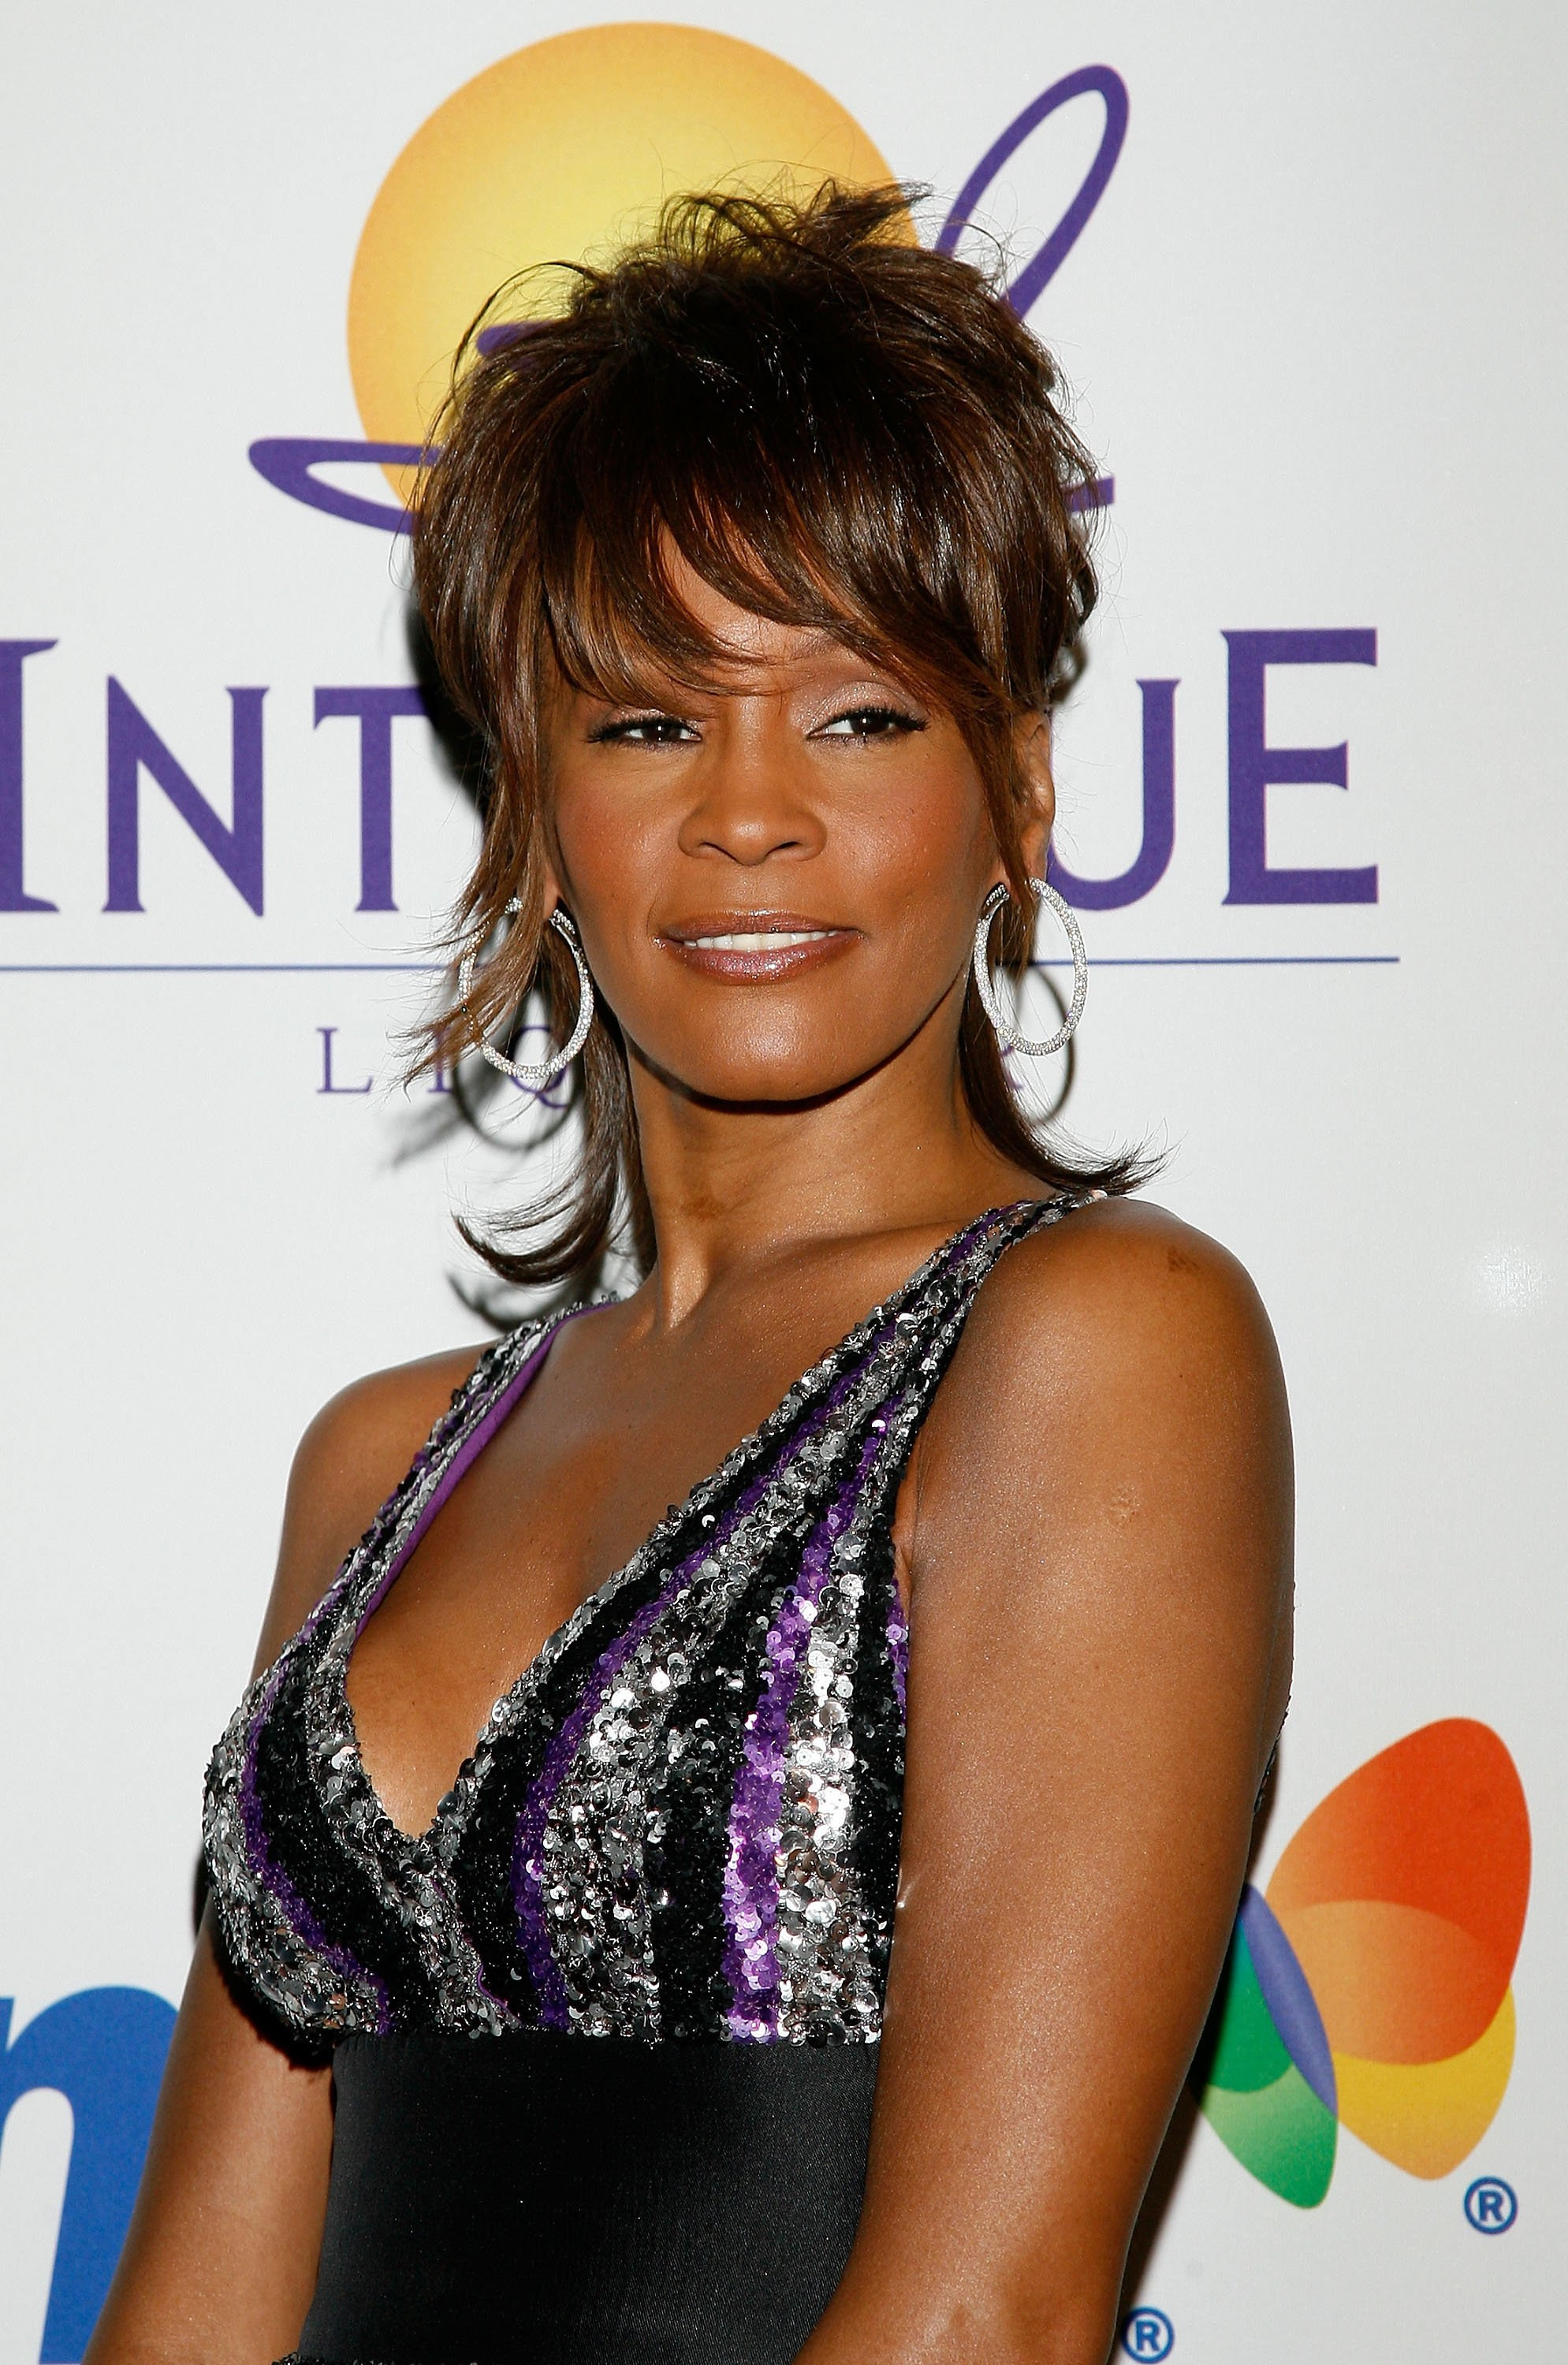 Whitney Houston at the Legendary Clive Davis Pre-Grammy Party on February 9, 2008 in Beverly Hills, California. | Photo: Getty Images